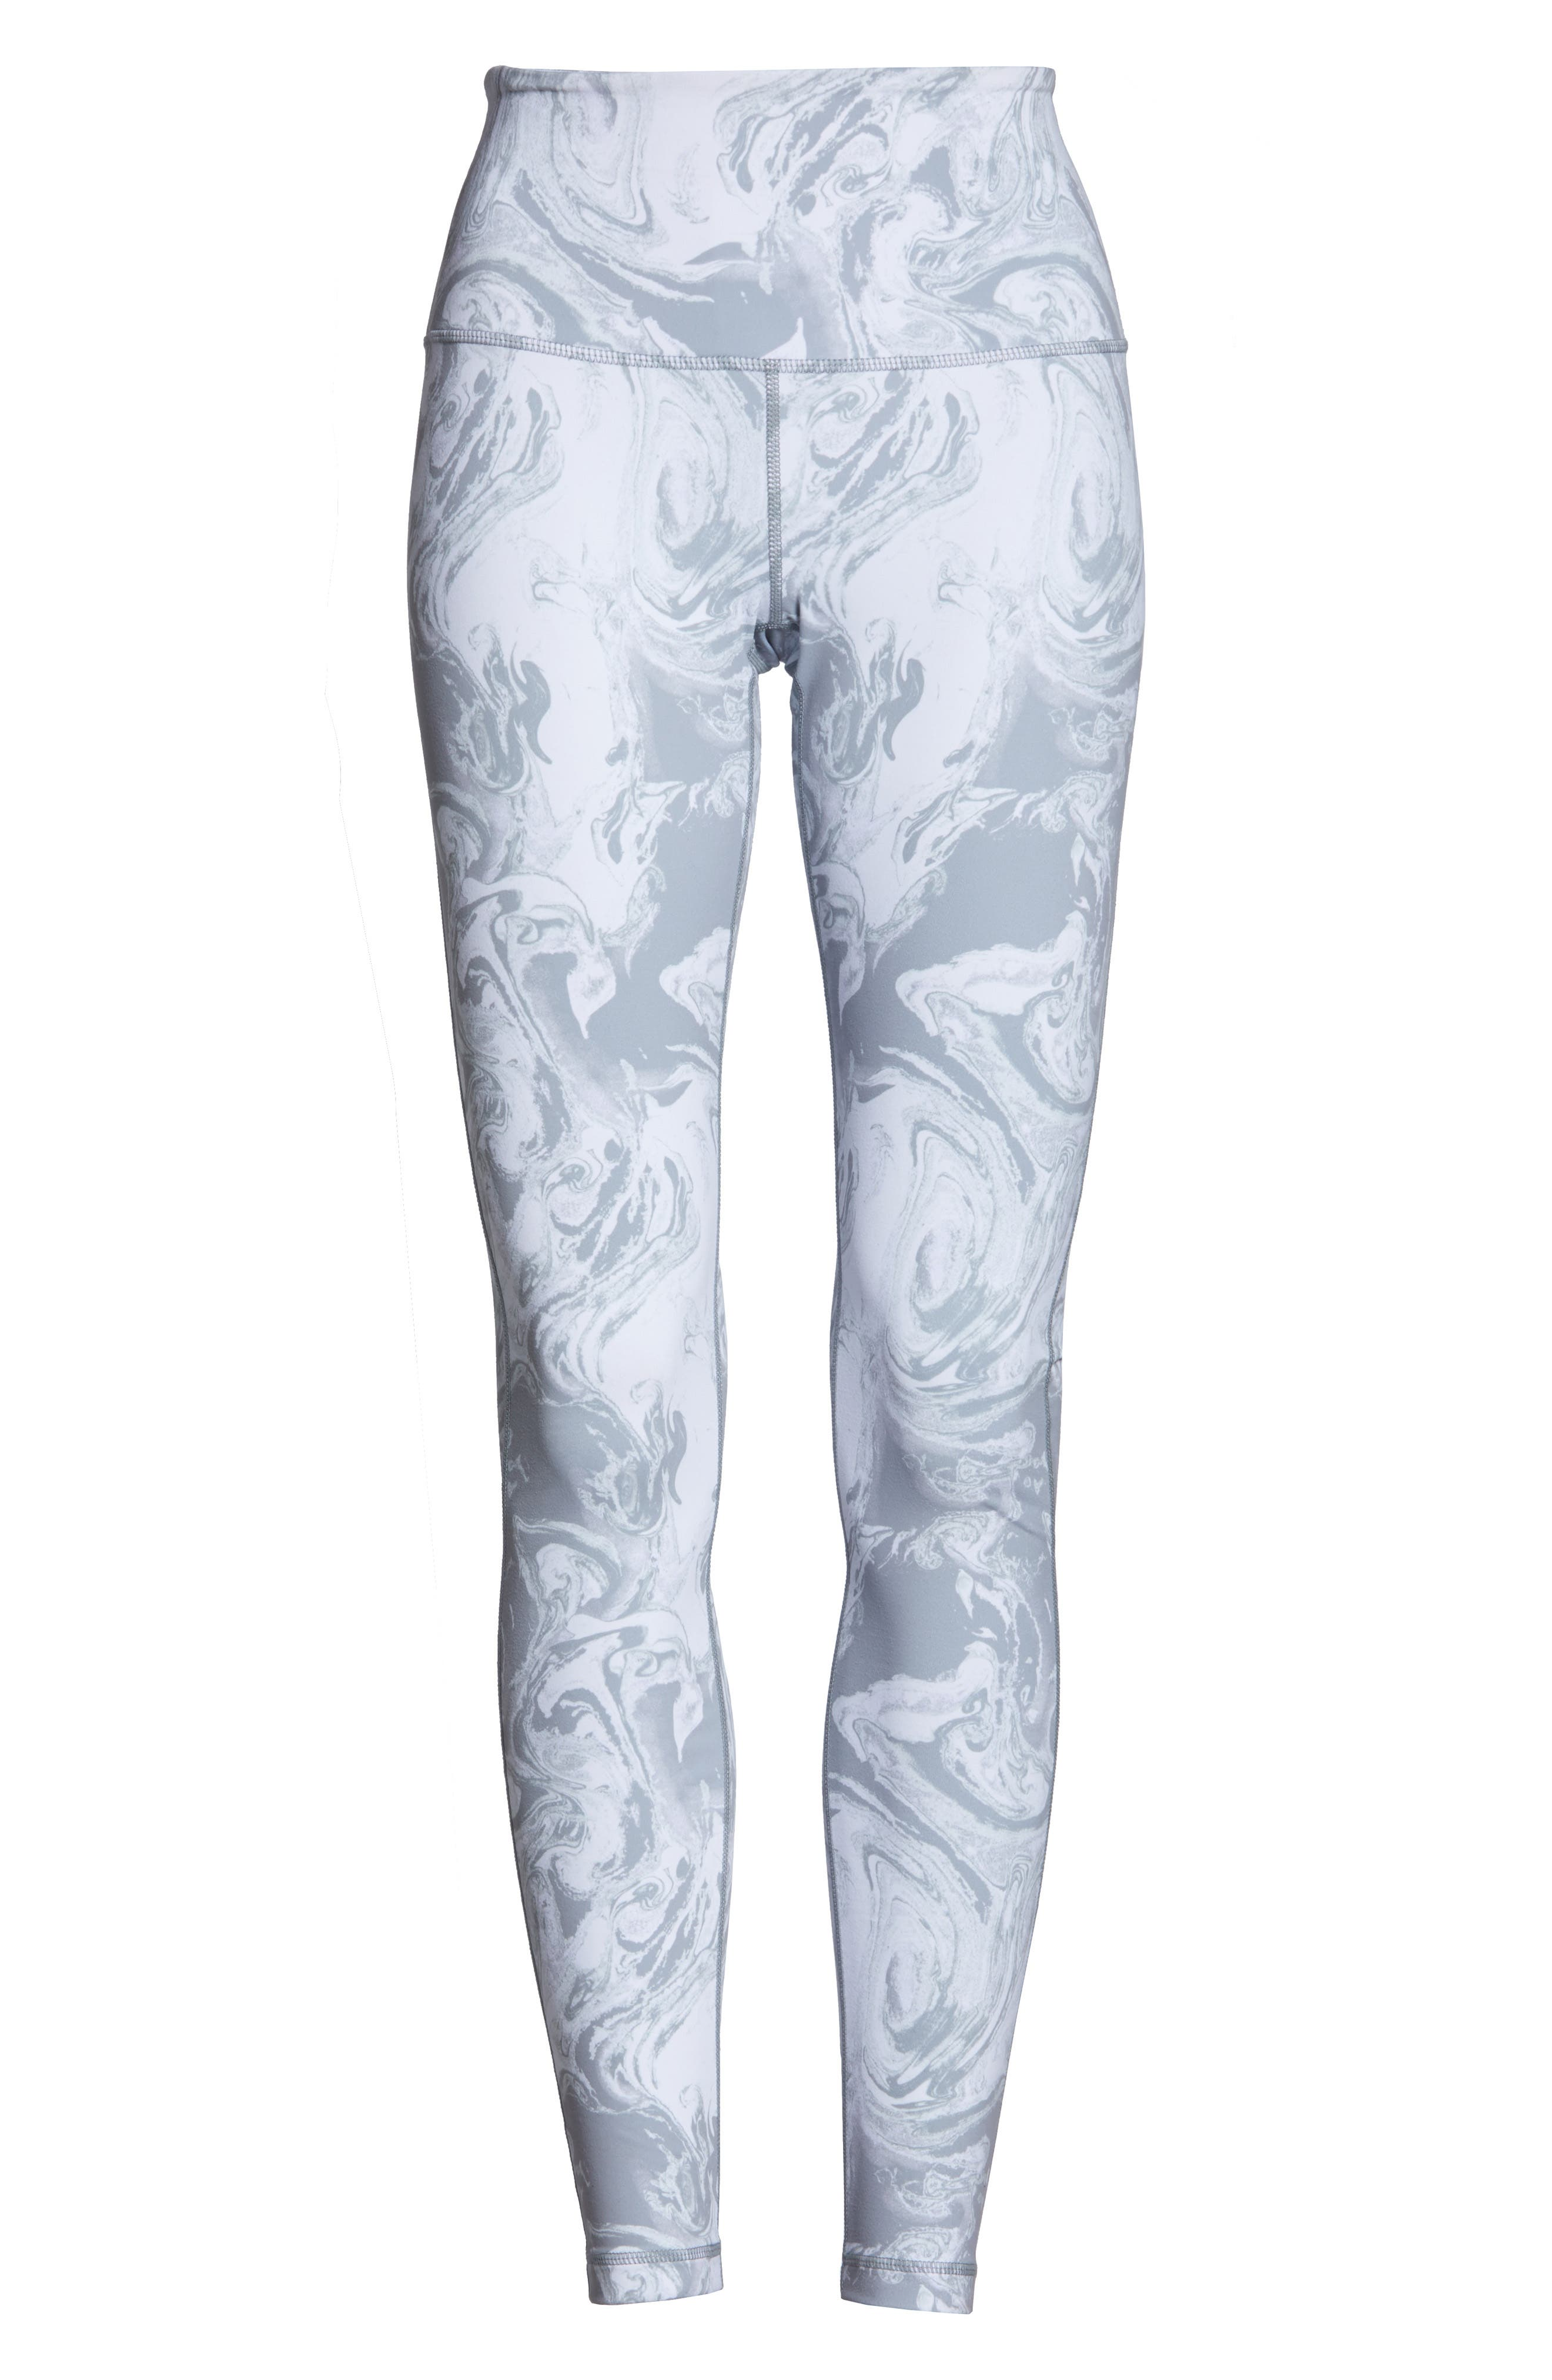 Live In High Waist Leggings,                             Alternate thumbnail 7, color,                             GREY SCONCE PRETTY MARBLE